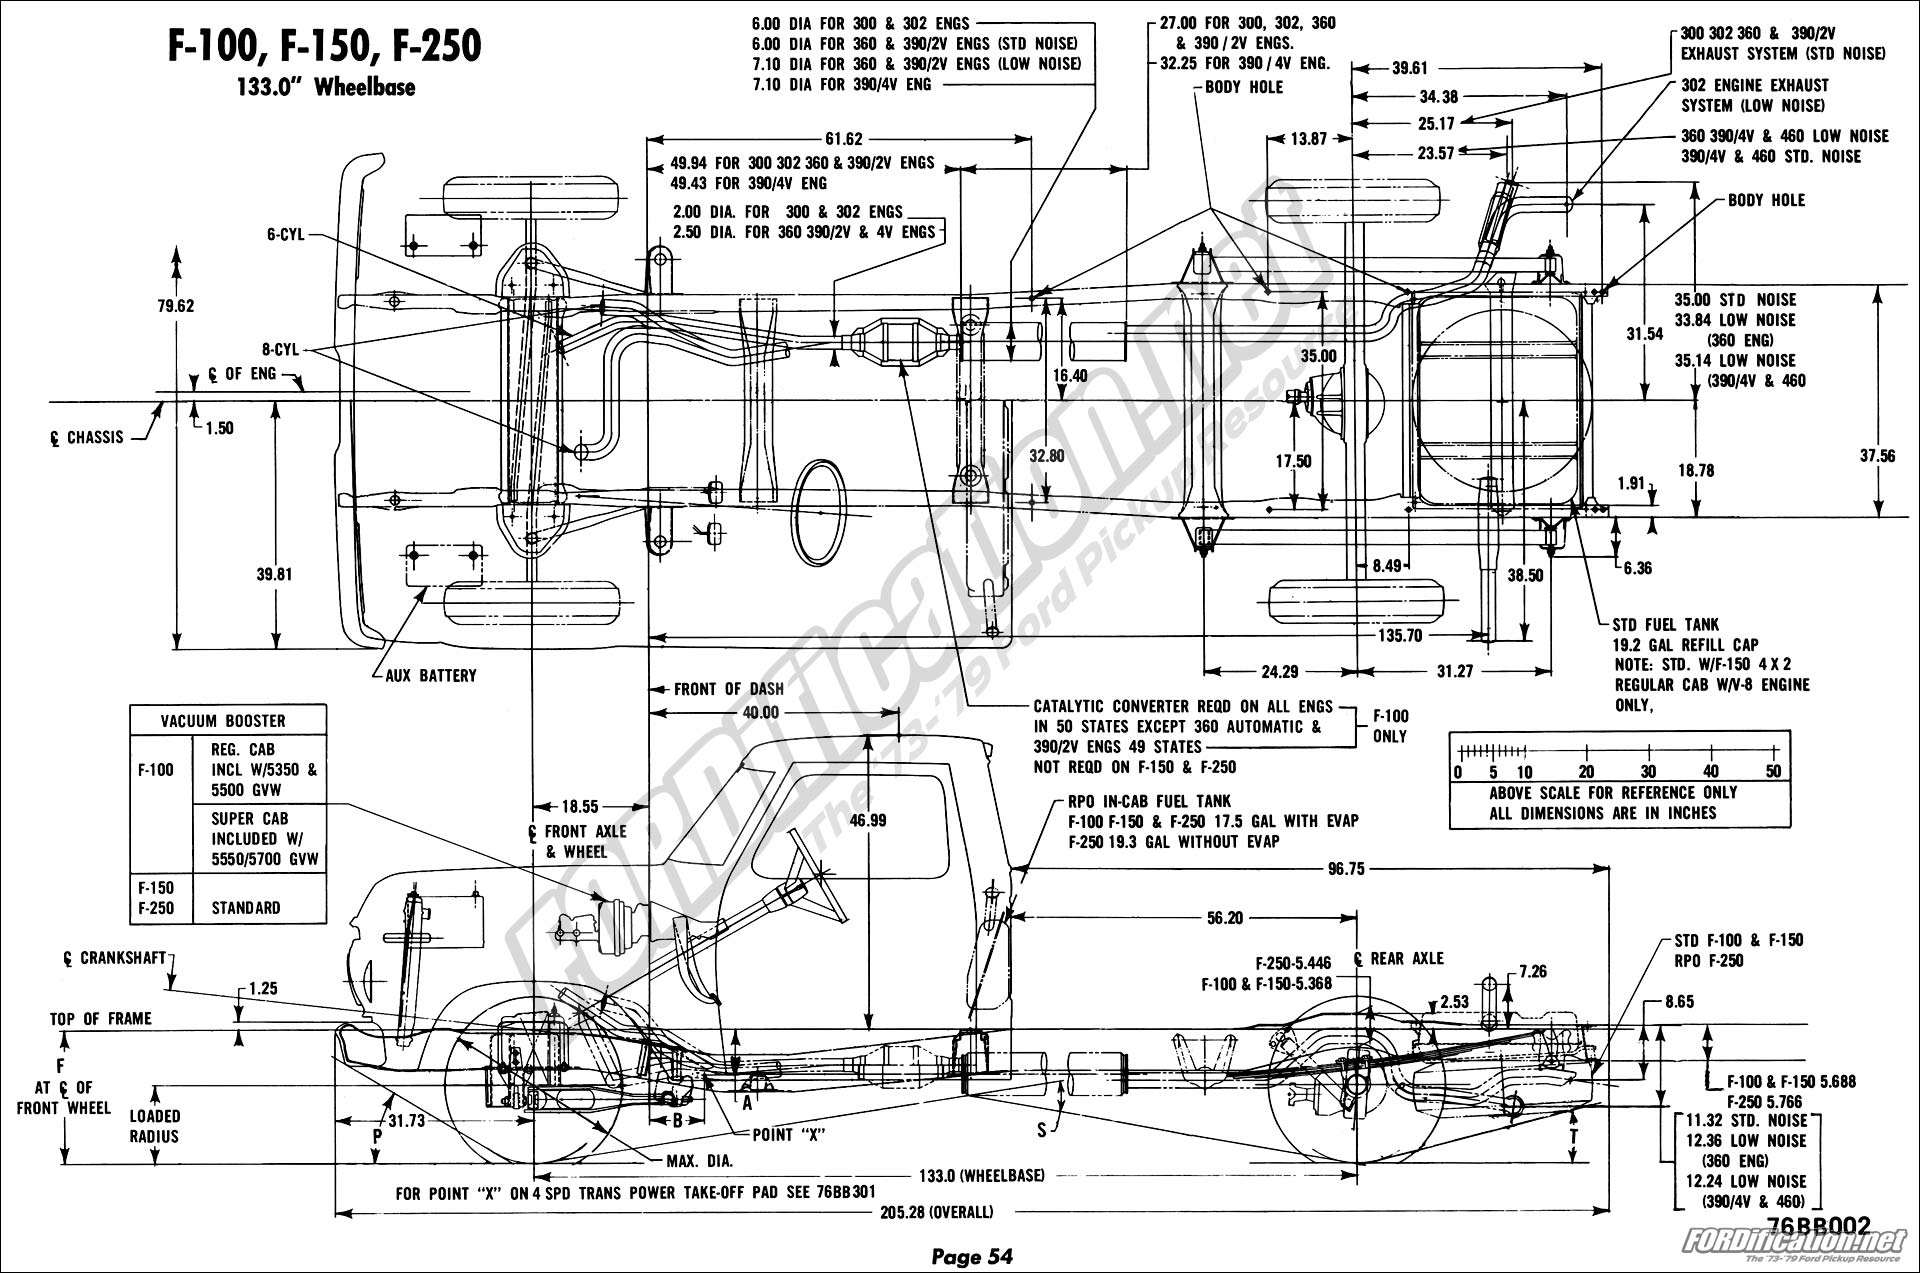 1970 ford mustang 302 vacuum diagram  1970  free engine